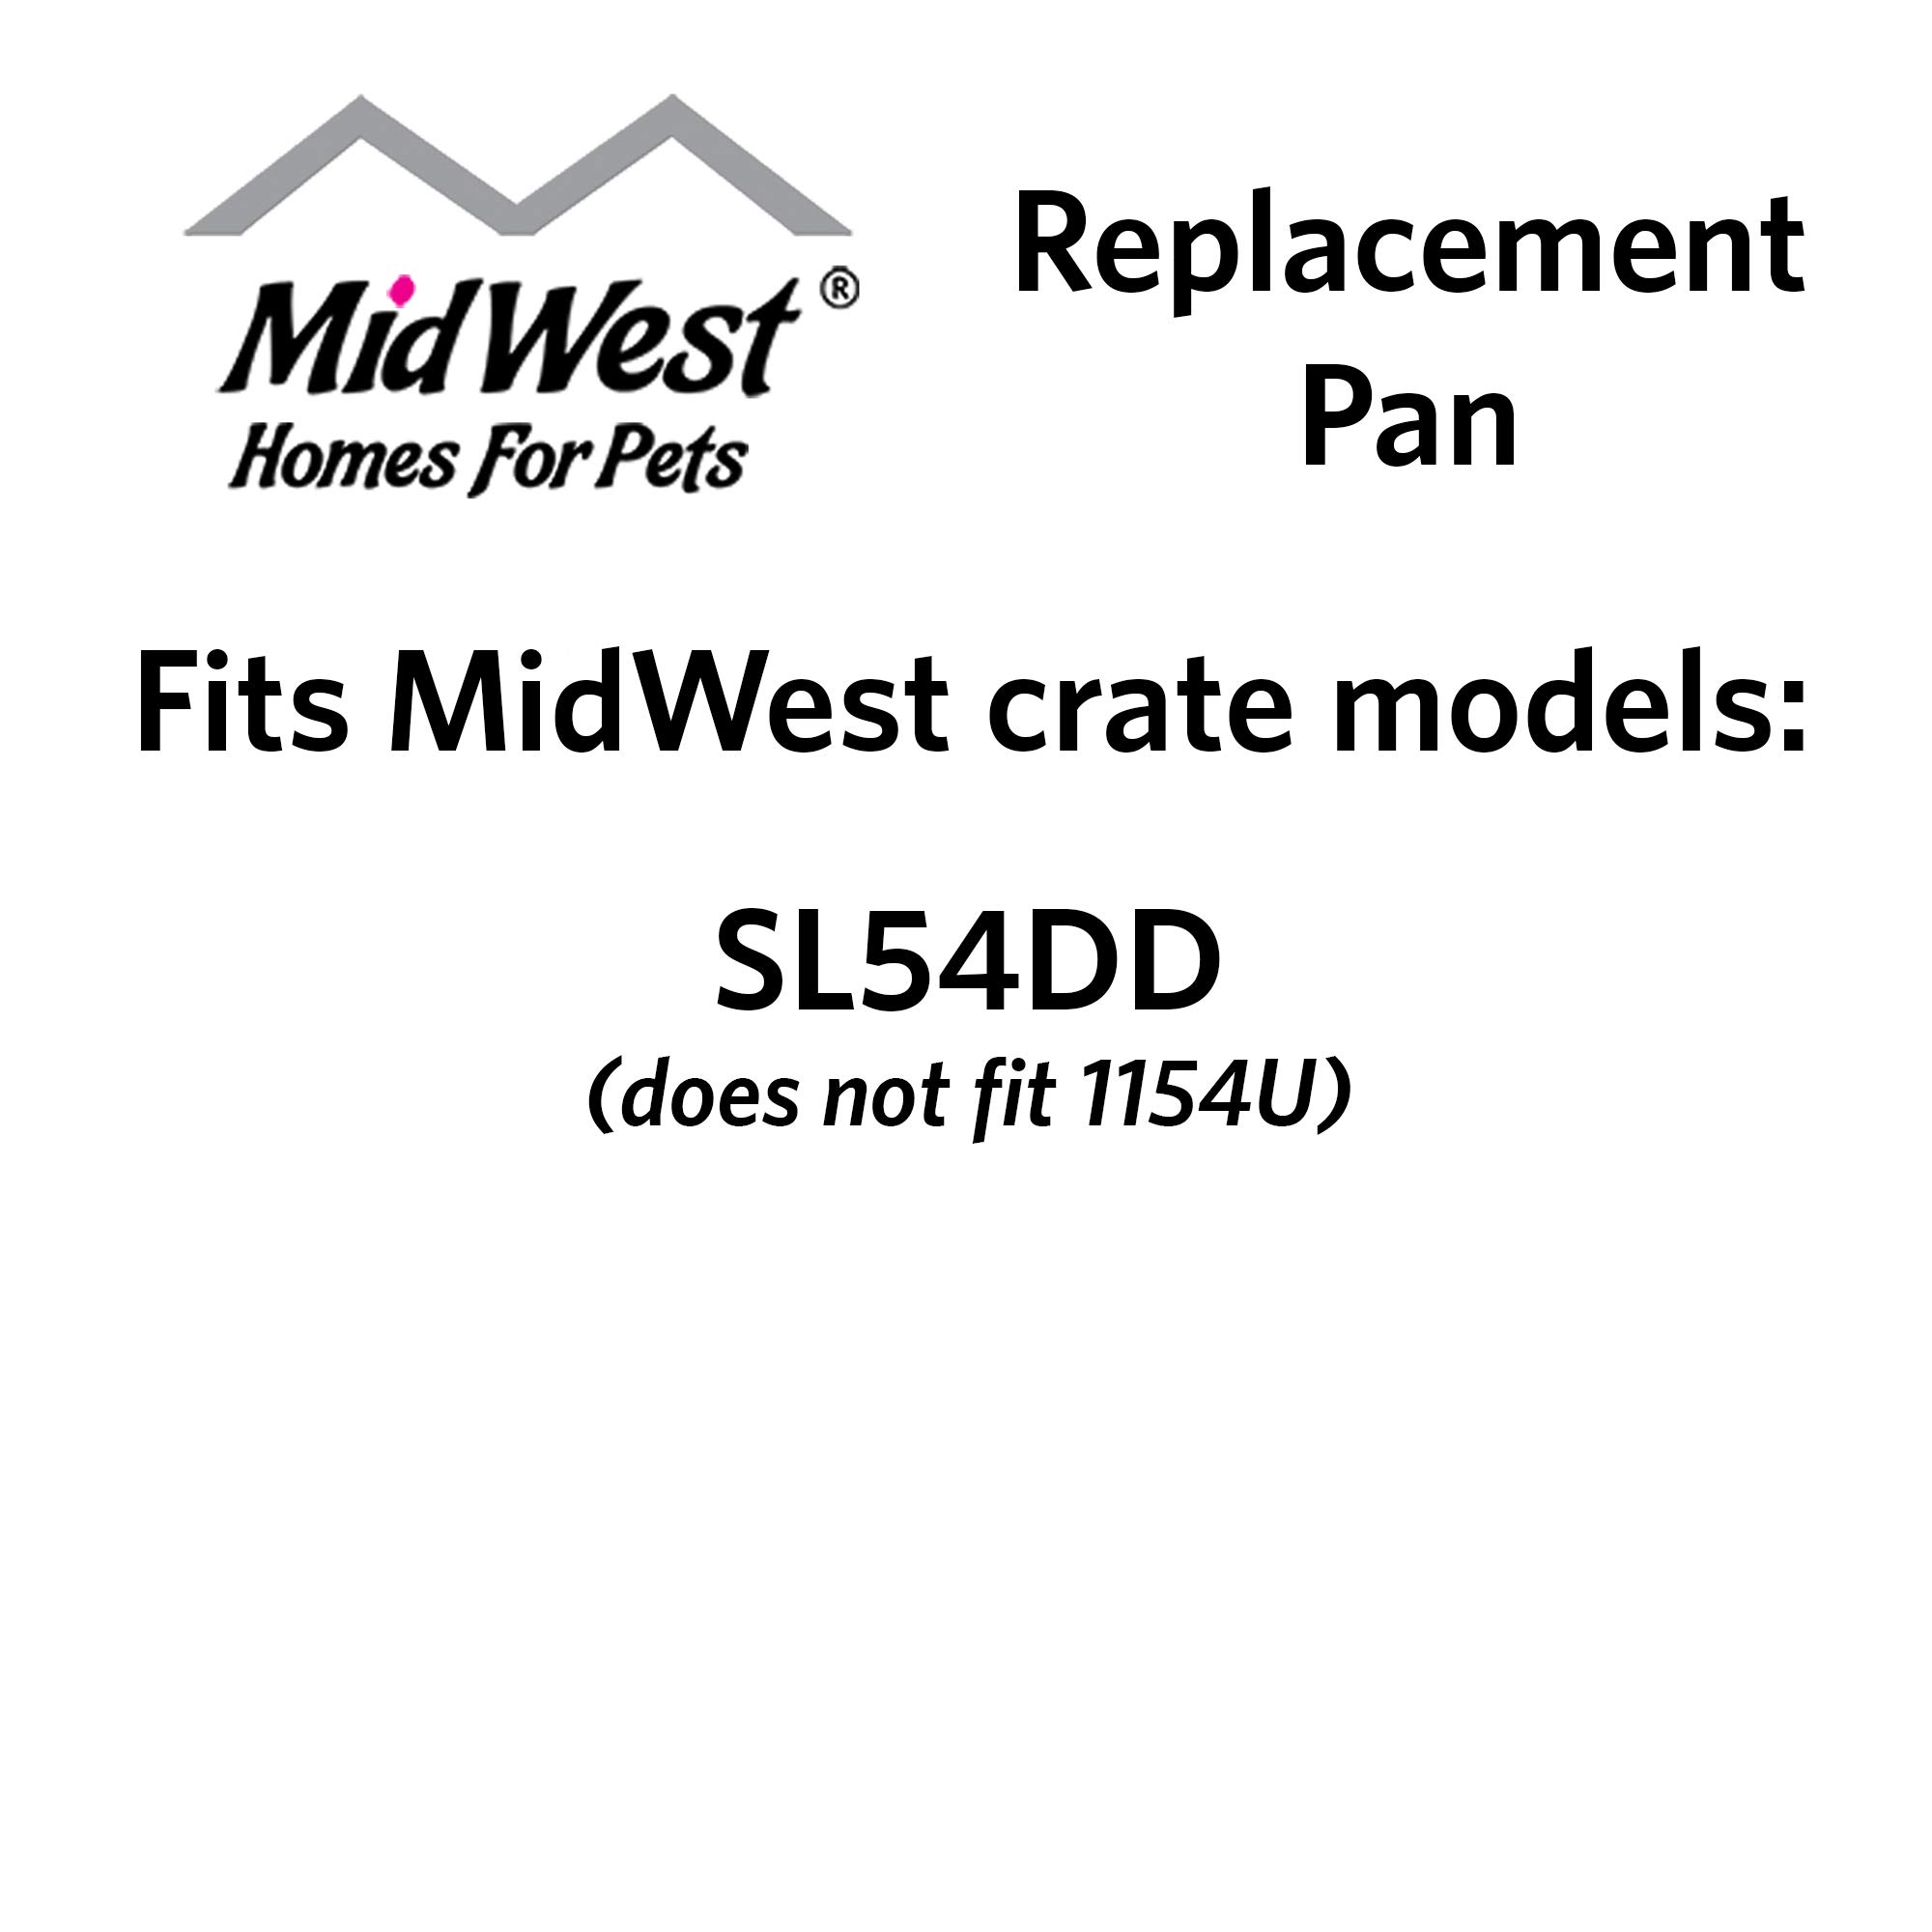 Replacement Pan for 54'' Long Midwest Dog Crate (SL54DD) by MidWest Homes for Pets (Image #1)